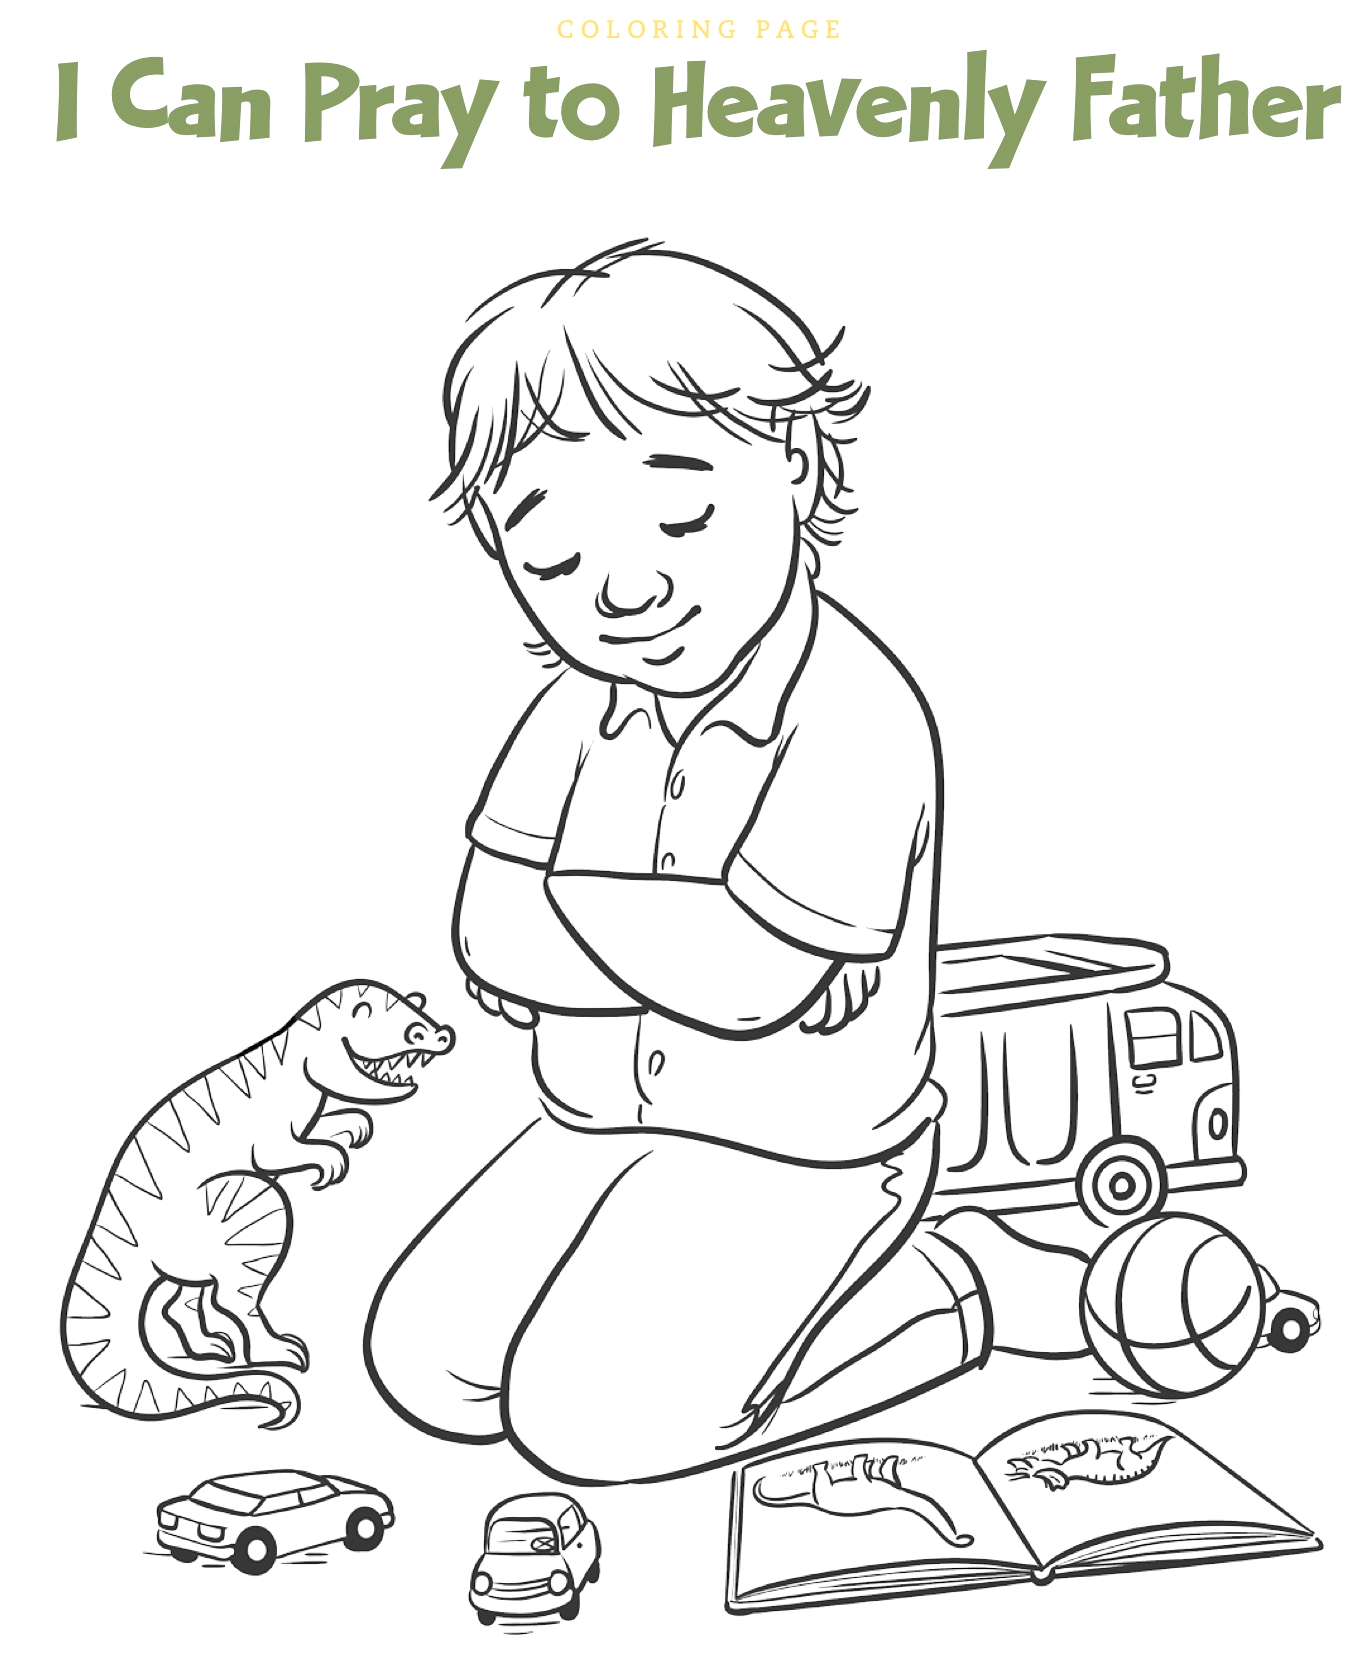 I Can Pray to Heavenly Father Coloring Page I Can Pray to Heavenly Father Coloring Page Coloring Pages